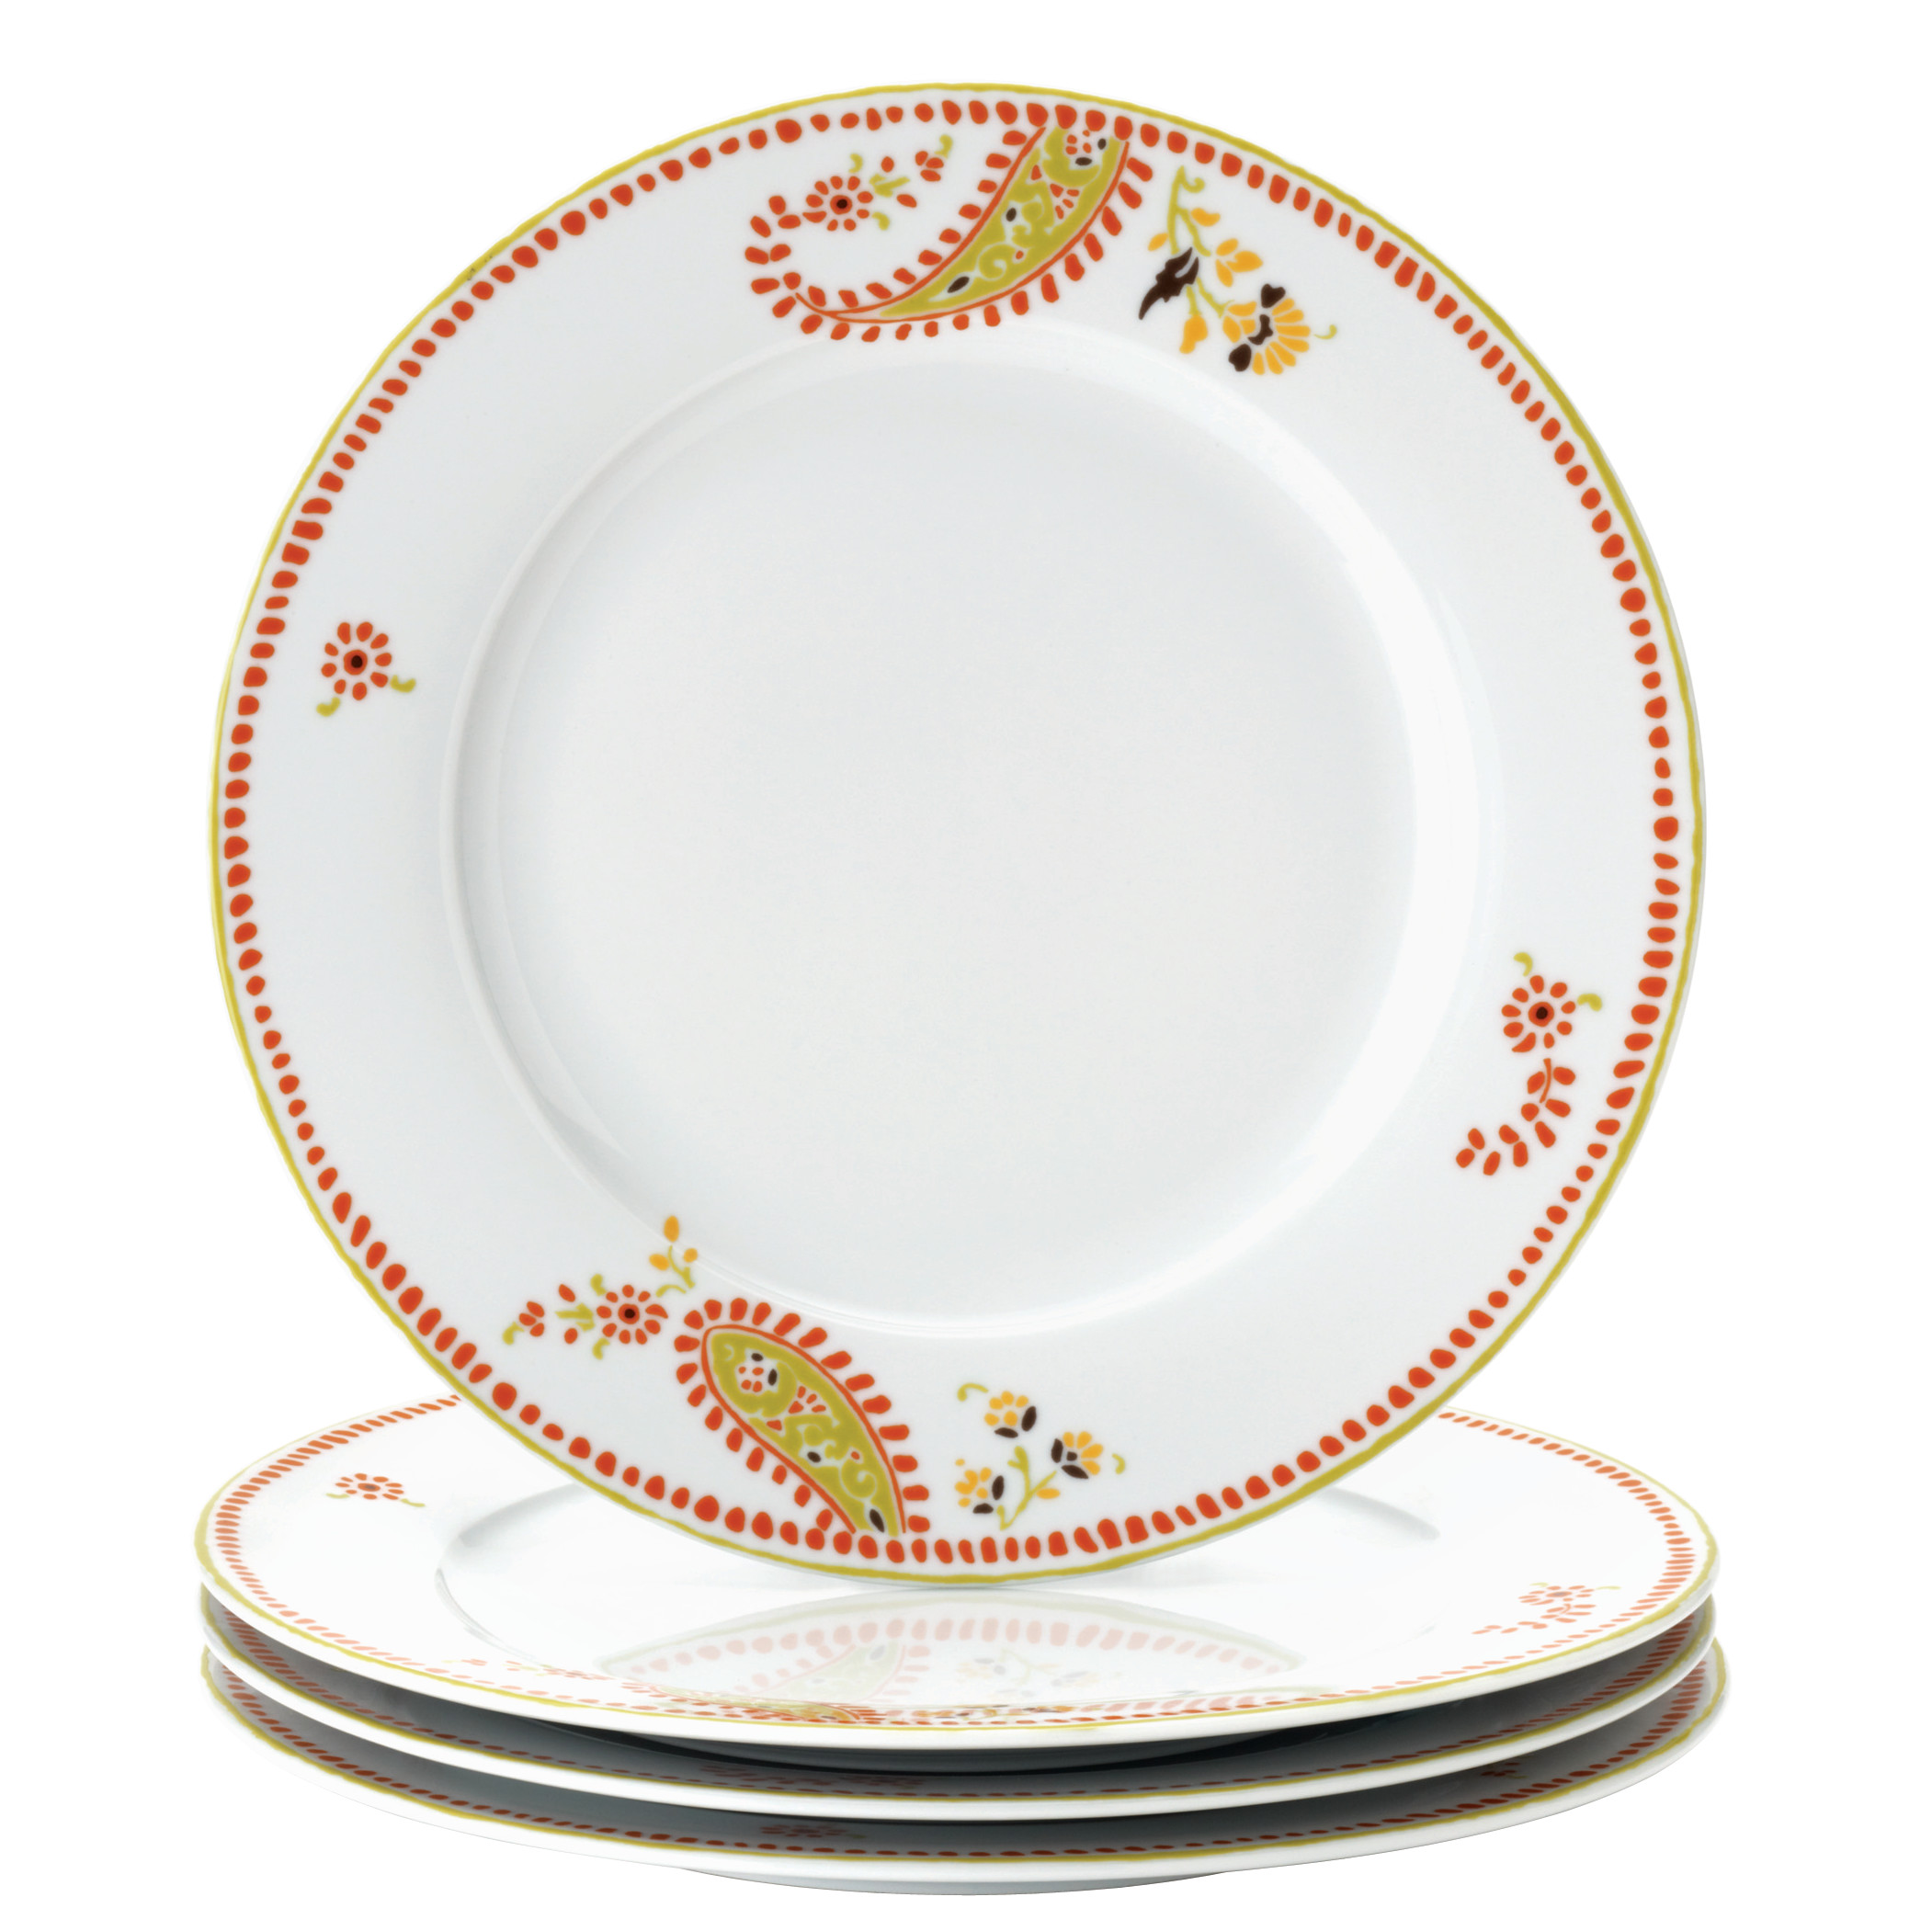 Rachael Ray Dinnerware Paisley 4-Piece Porcelain Dinner Plate Set  sc 1 st  Walmart & Rachael Ray Dinnerware Paisley 4-Piece Porcelain Dinner Plate Set ...